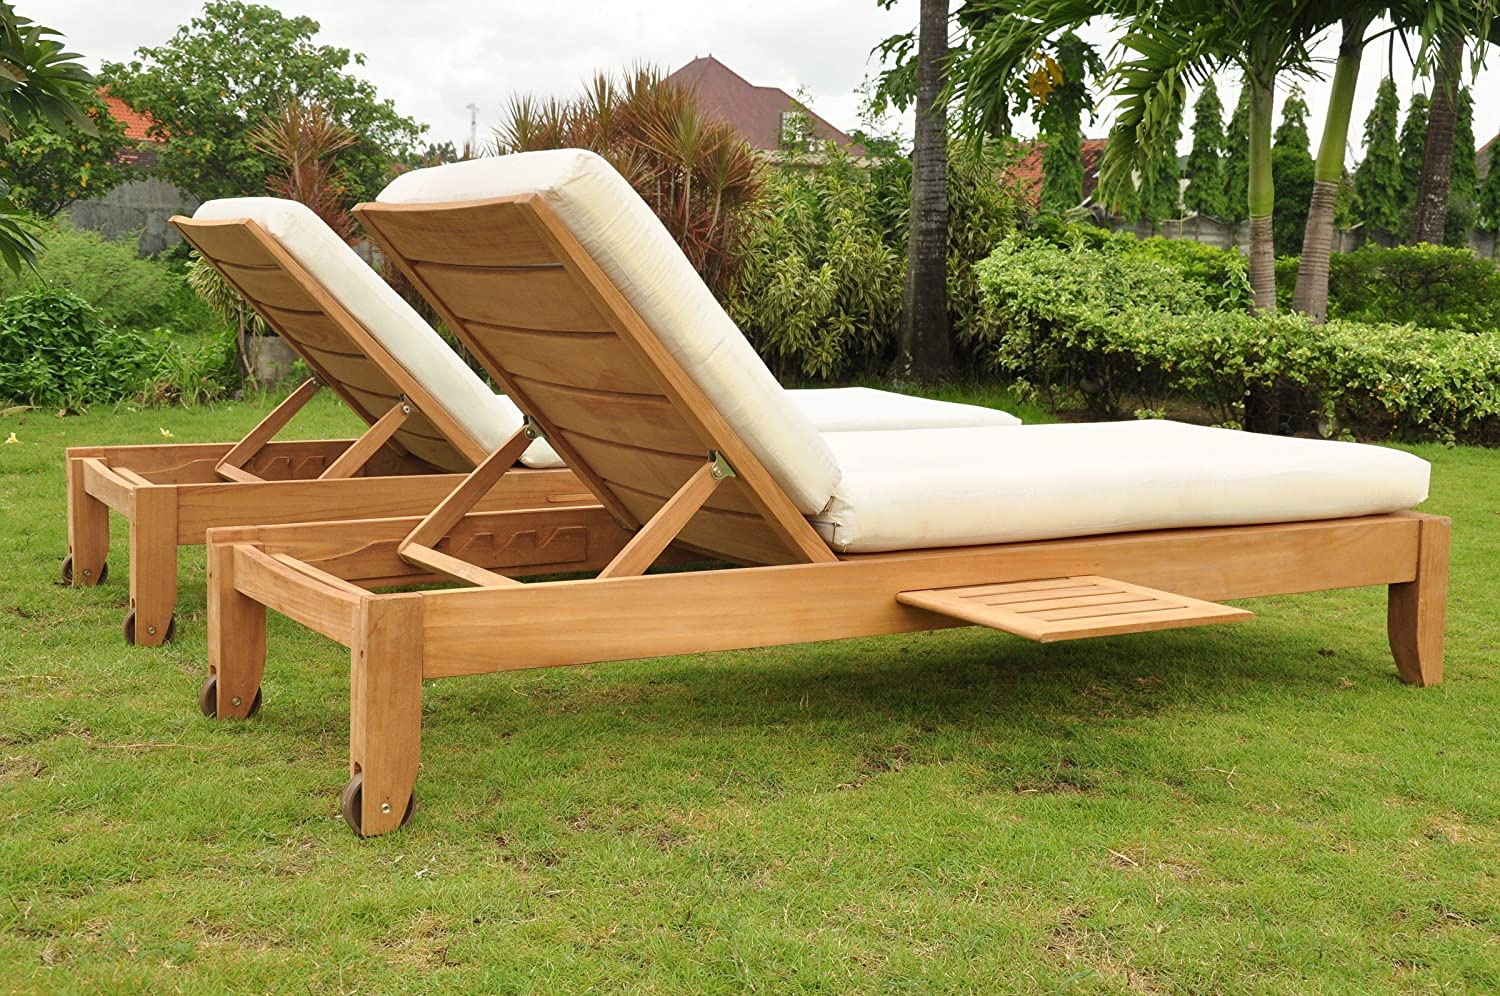 Outdoor Sunbrella Fabric Custom Made Cushions for Atnas Chaise Lounger - Cushions Only #WFCHATCS